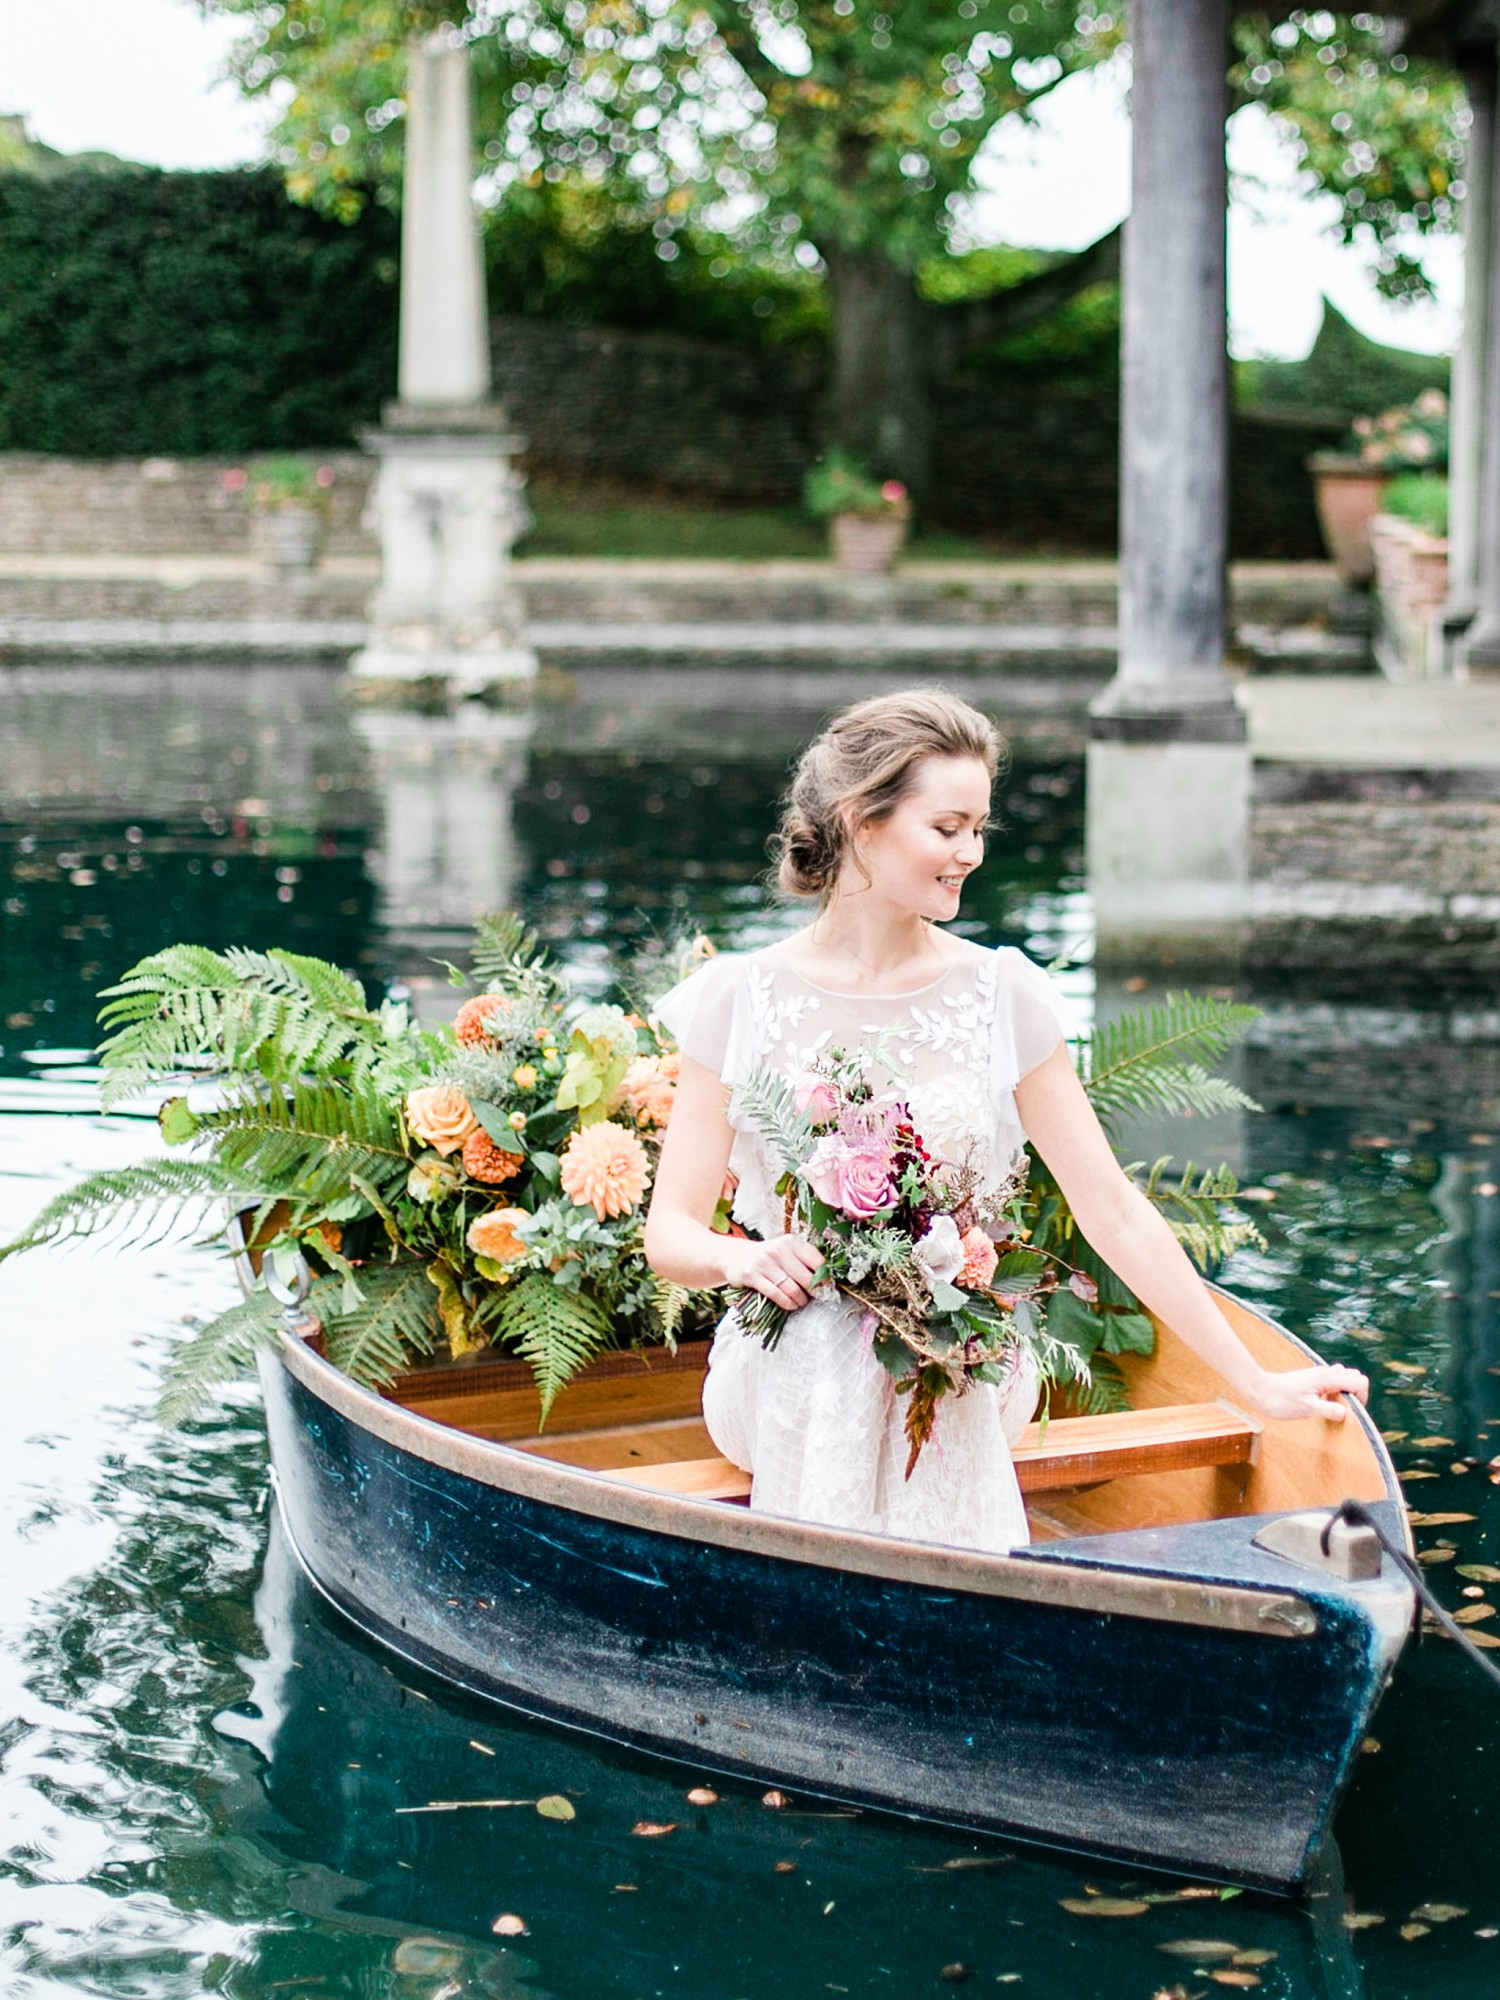 Cotswolds Weddings,Sandon Hall Wedding,Staffordshire Wedding Photographer,The Lost Orangery,Weddings at the lost orangery,fine art wedding photographer,